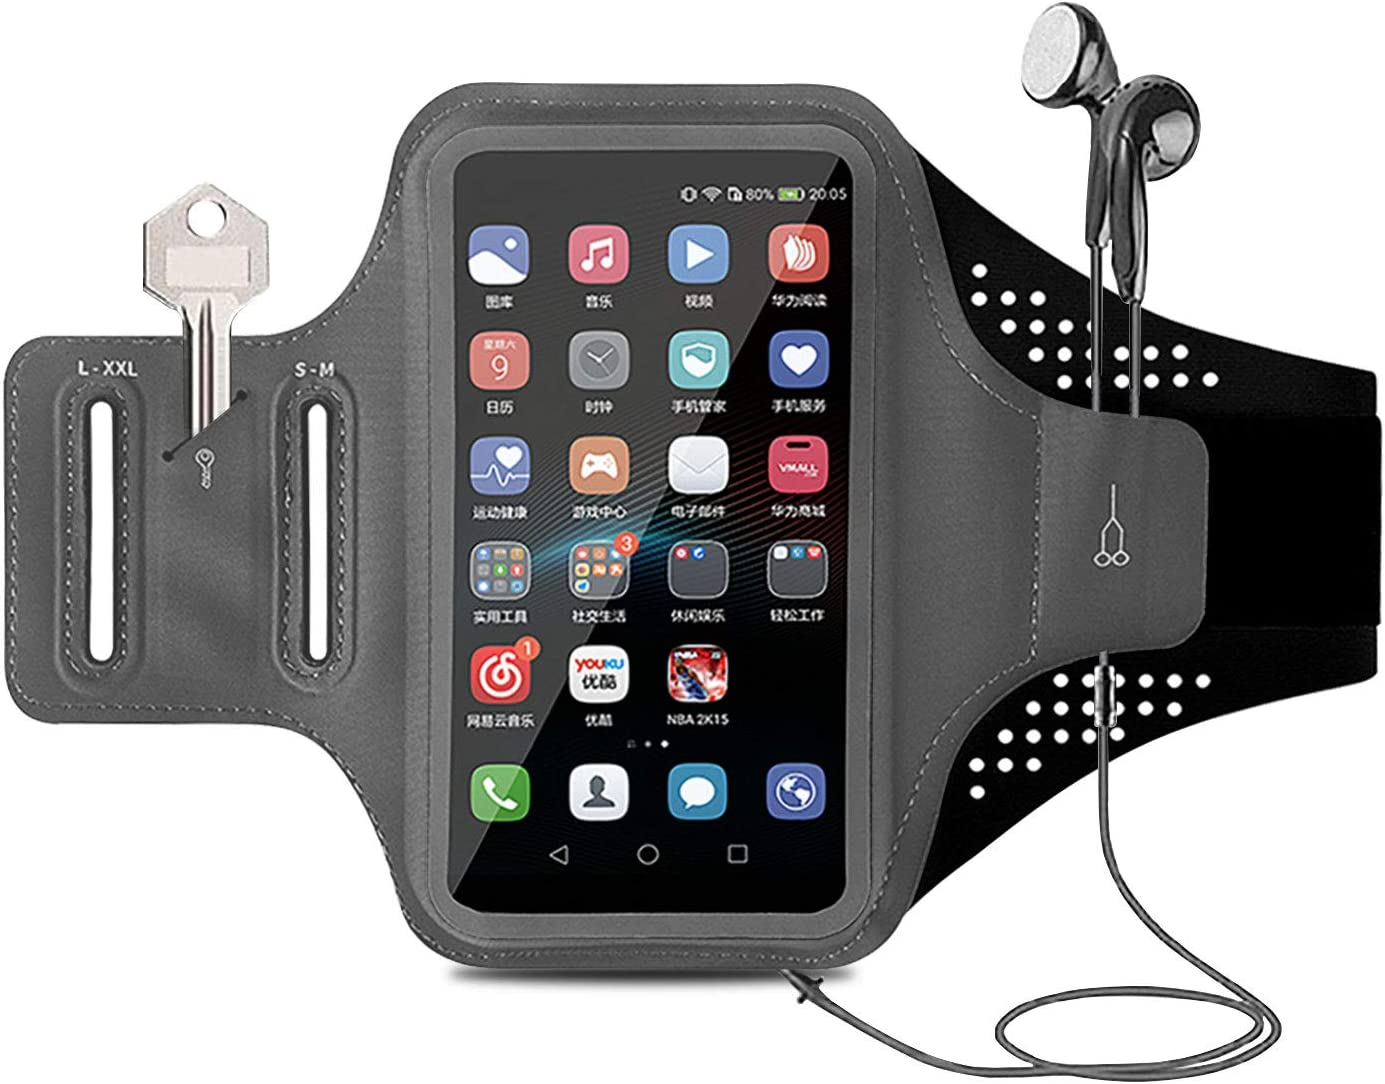 MOVOYEE Armband for Cell Phone Running Armband iPhone Armband 12 11 Pro Max Xs Xr X 8 7 6 Plus SE/Smartphone,Phone Armband Phone Holder for Workout/Sport/Exercise/Fitness/Jogging/Gym Touch ID Sleeve